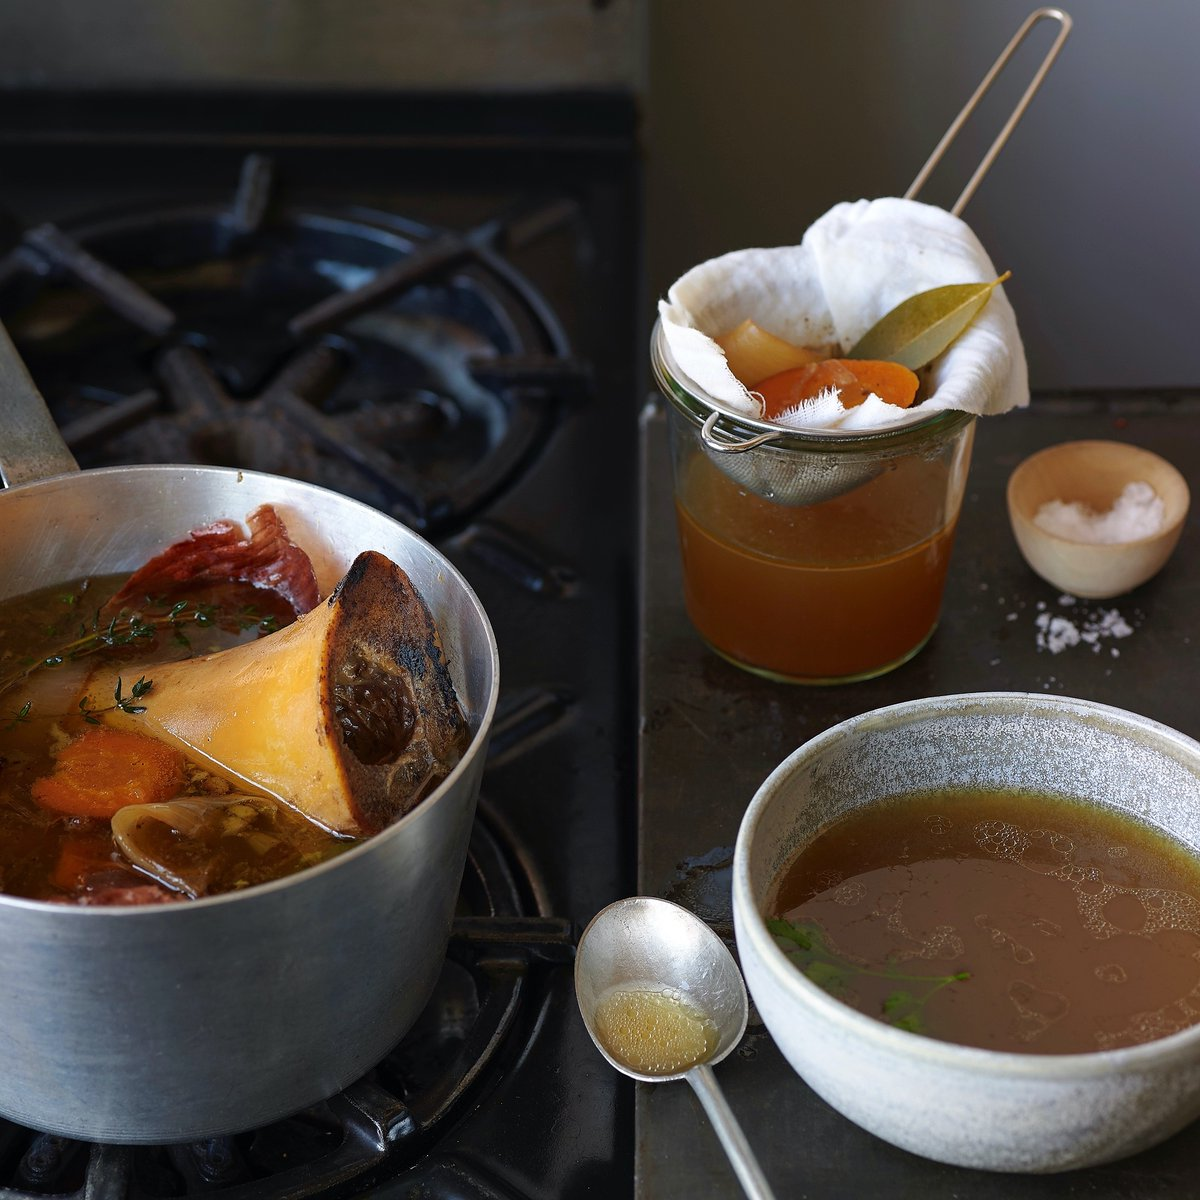 Bone broth is a health staple and rightfully so. It's a low-cal drink with 0 gram Net Carbs that boasts a boost of protein, plus a rich, comforting flavour that helps cleanse your system. Recipe on FB. #atkins#AtkinsDiet#diet#keto#dietfood#lowcarbpic.twitter.com/PGVV7l1kp3